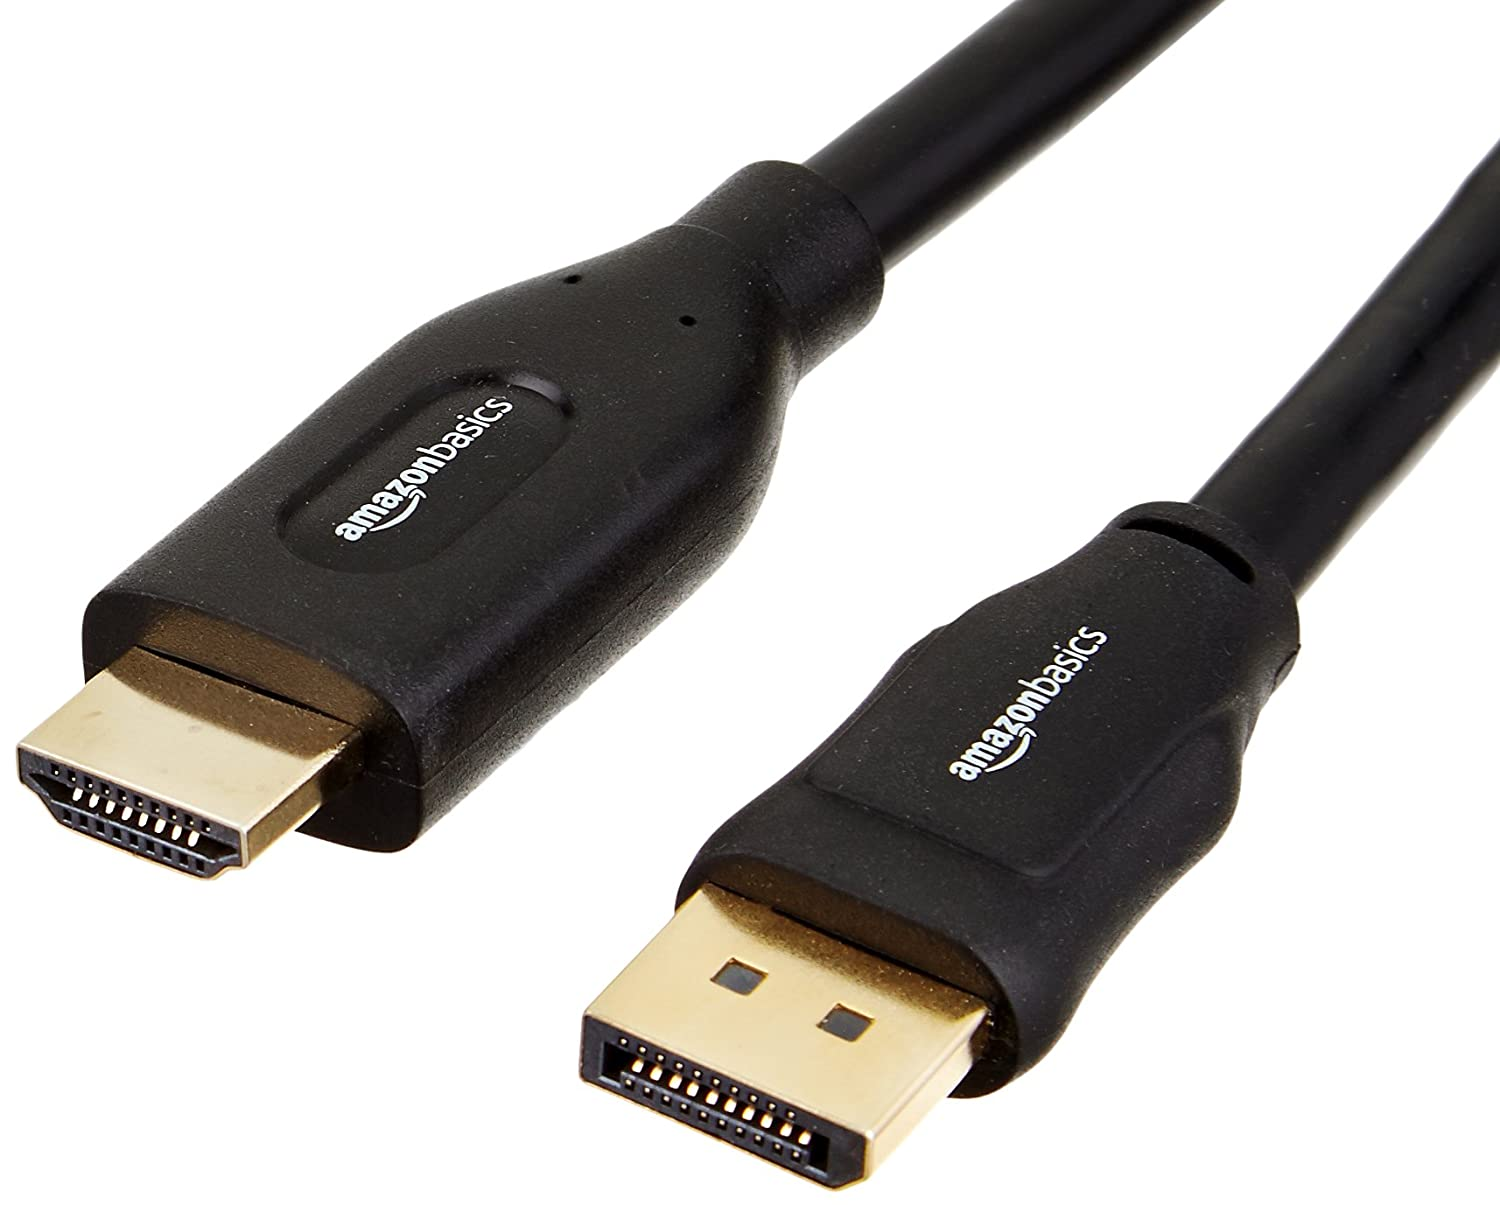 AmazonBasics DisplayPort to HDMI Display Cable - 25 Feet